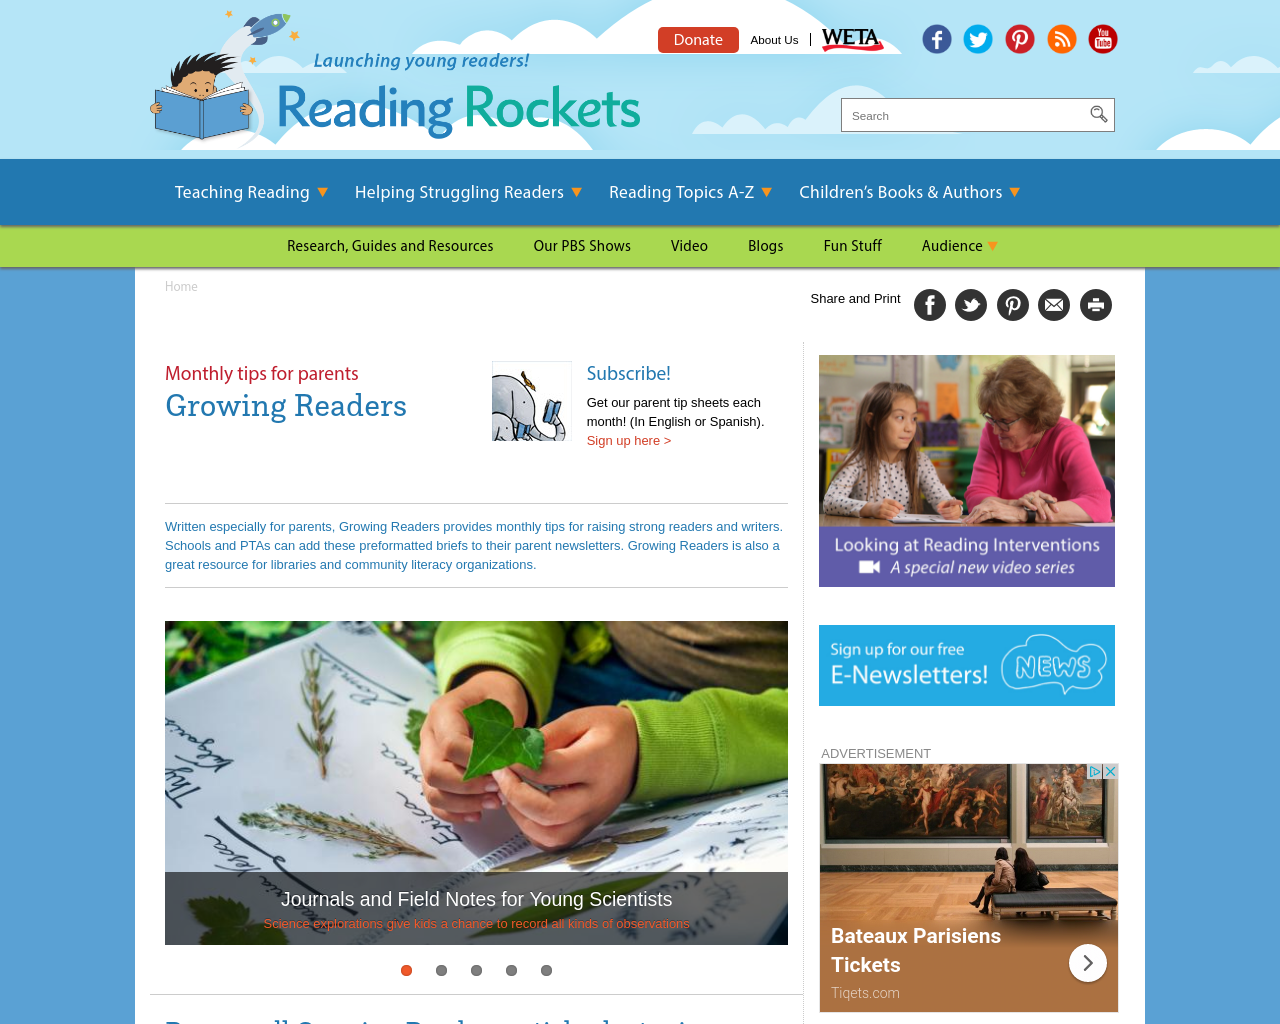 Parents and Reading